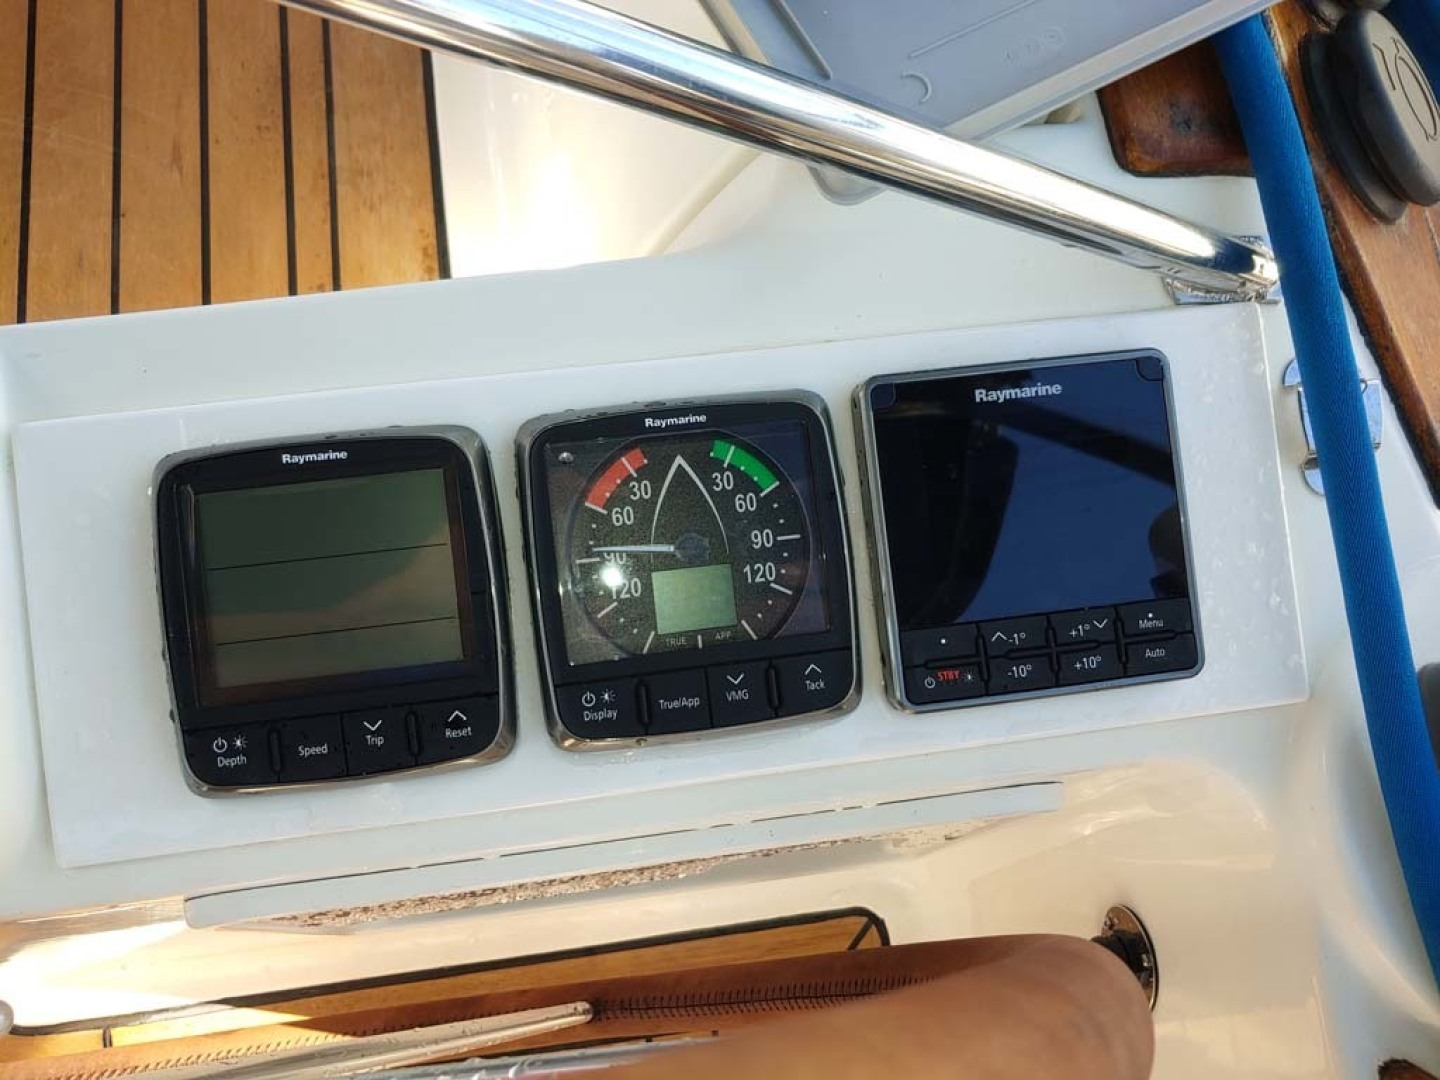 Jeanneau-Sun Odyssey 52.2 2001-Perseverance Hollywood-Florida-United States-Starboard Helm Nav Instruments-1631460 | Thumbnail